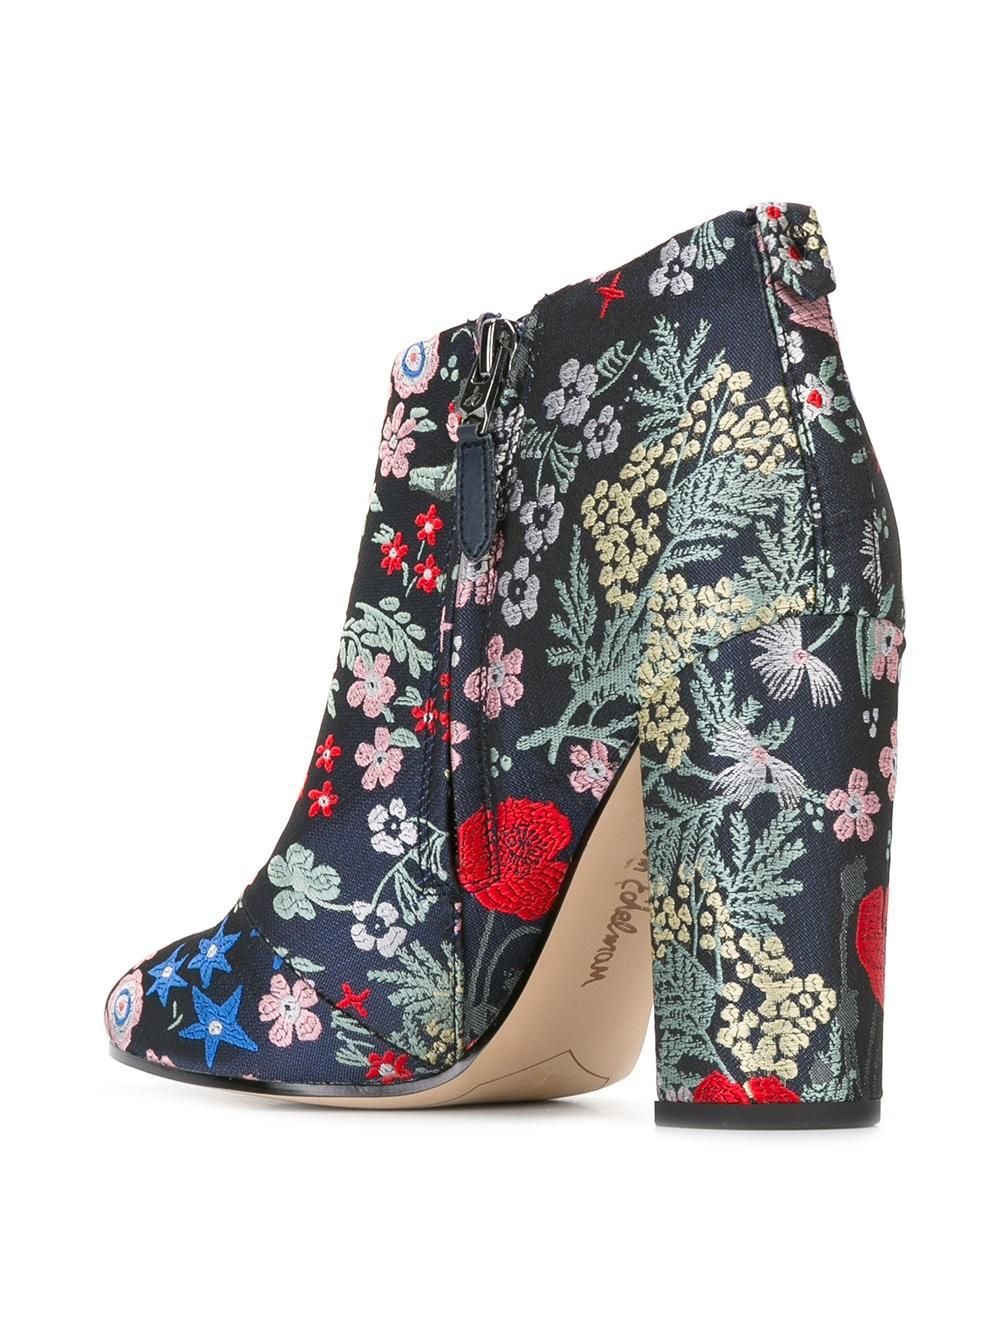 88d92bd3fc3c8 Lyst - Sam Edelman Cambell Embroidered Booties in Blue